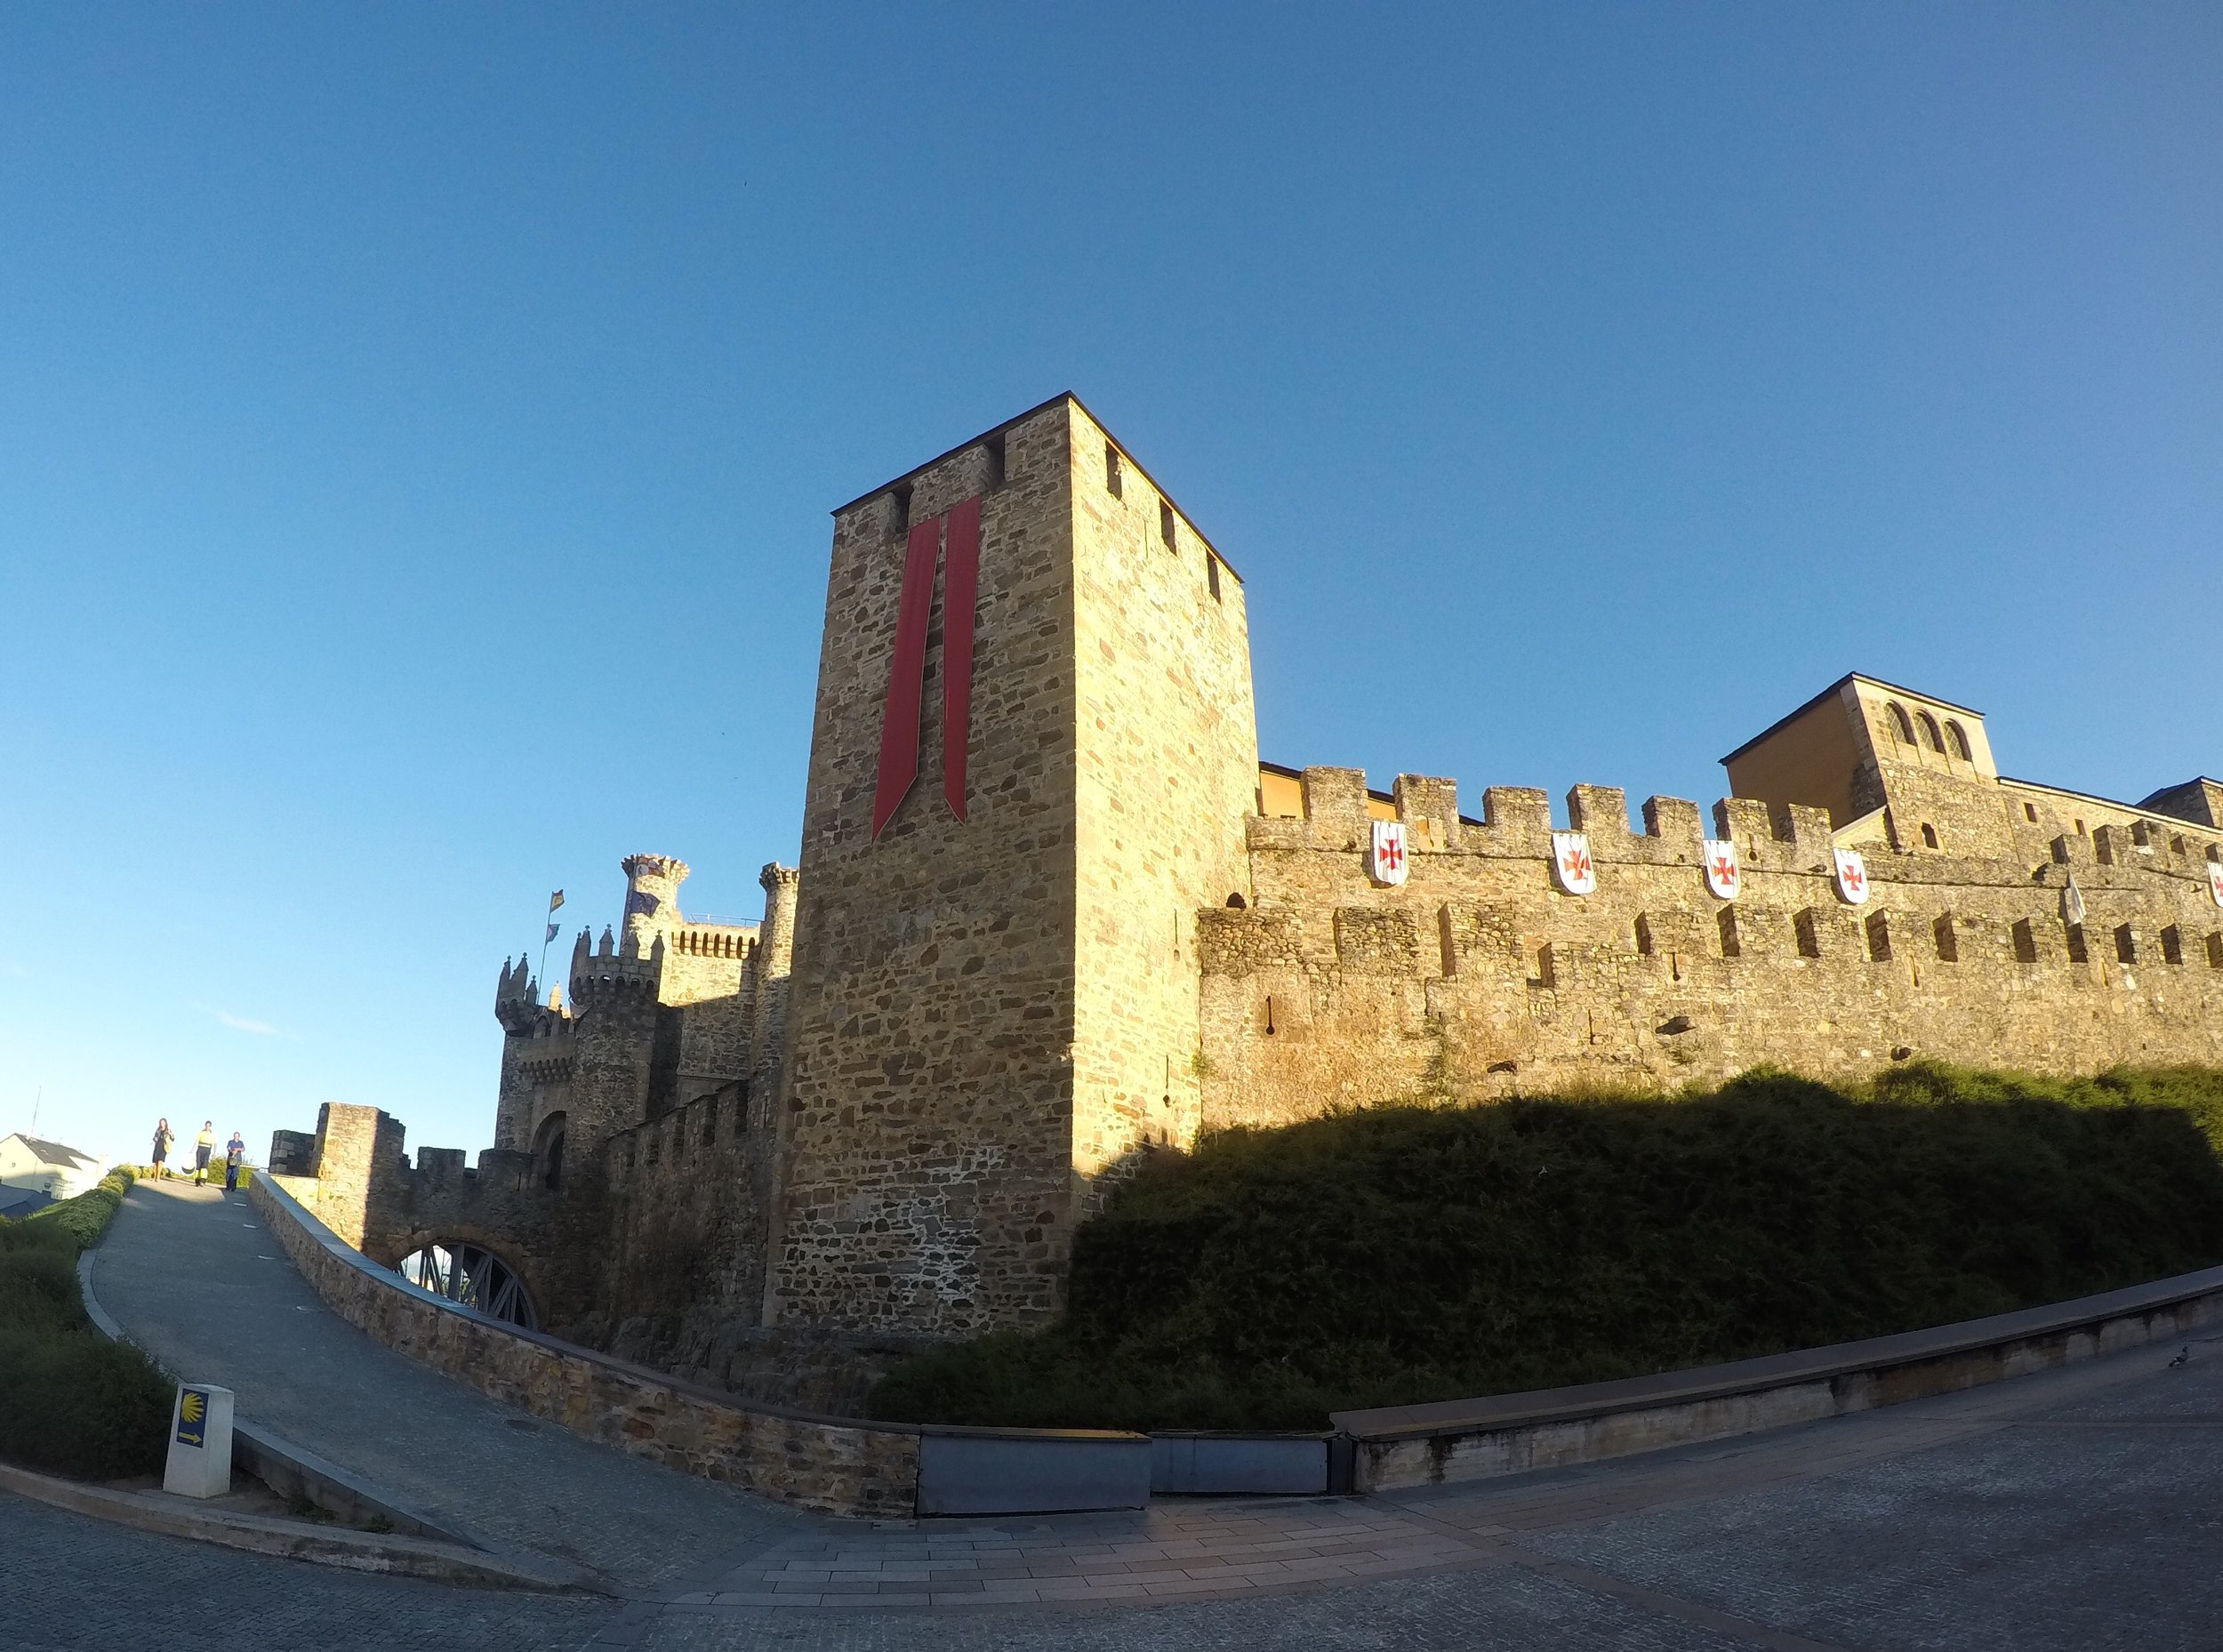 Passing the Castle of the Knights Templar on our way out of Ponferrada